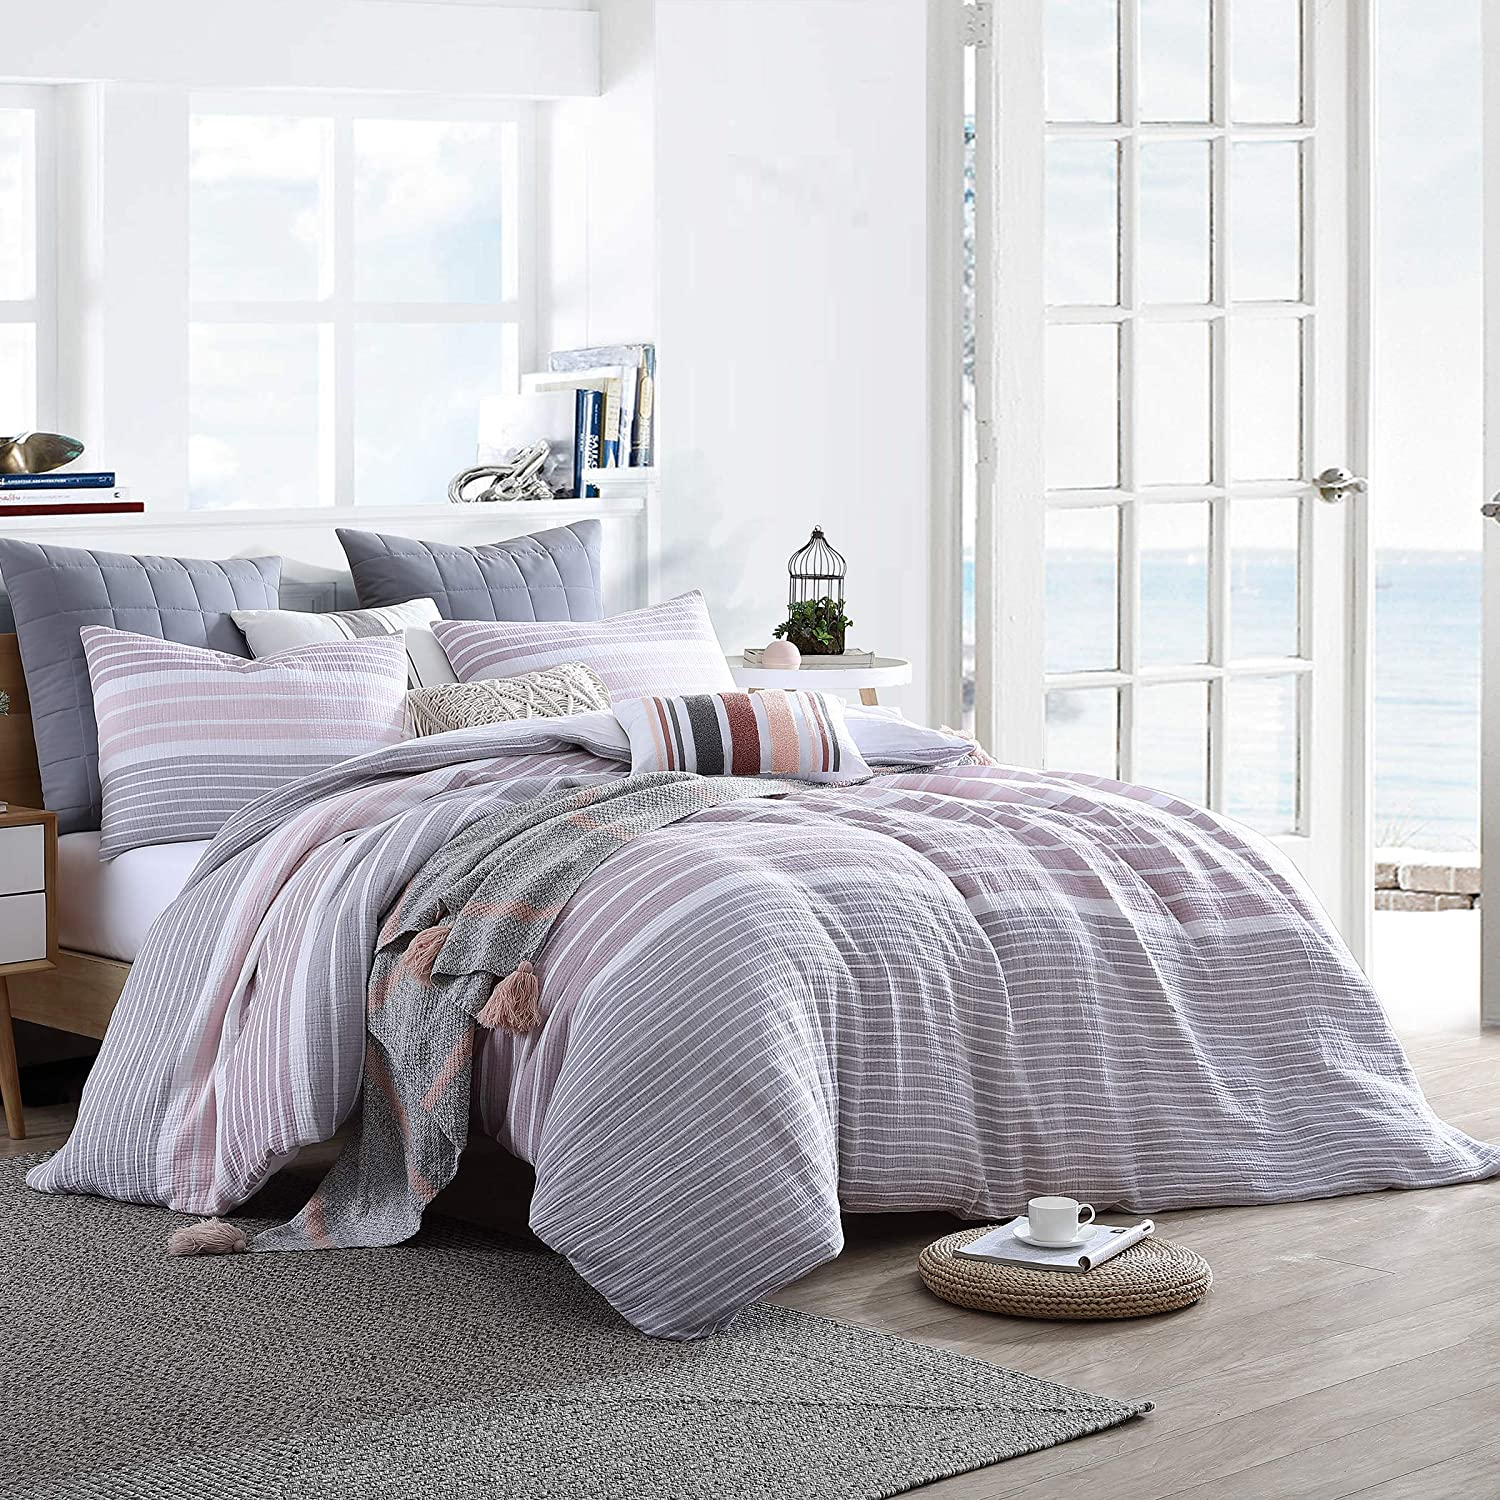 Swift Home Cordelia Prewashed Yarn-Dyed 100% Cotton Gauze Stripe Duvet Cover Set, Oeko-Tex Certified, Ultra Soft and Breathable, Button Closure, All Season - Mauve, Twin/Twin XL (68